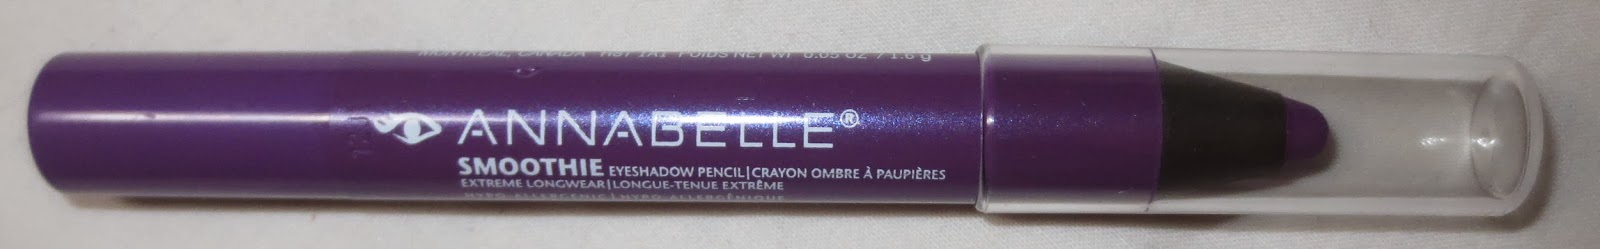 Annabelle Smoothie Eyeshadow Pencil in Grapefull